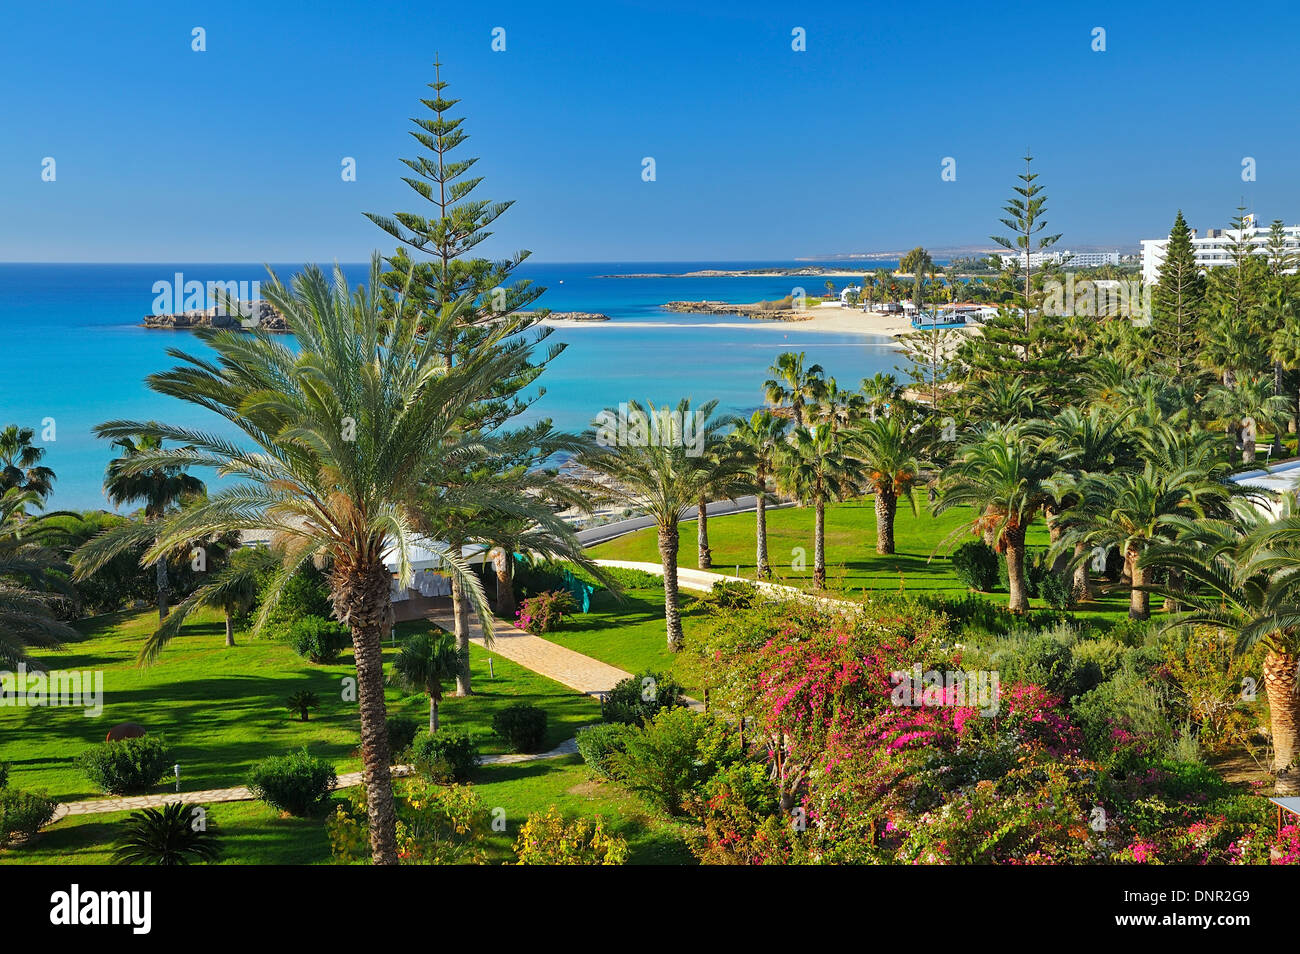 View from the Nissi Beach Hotel in Ayia Napa, Cyprus. Stock Photo